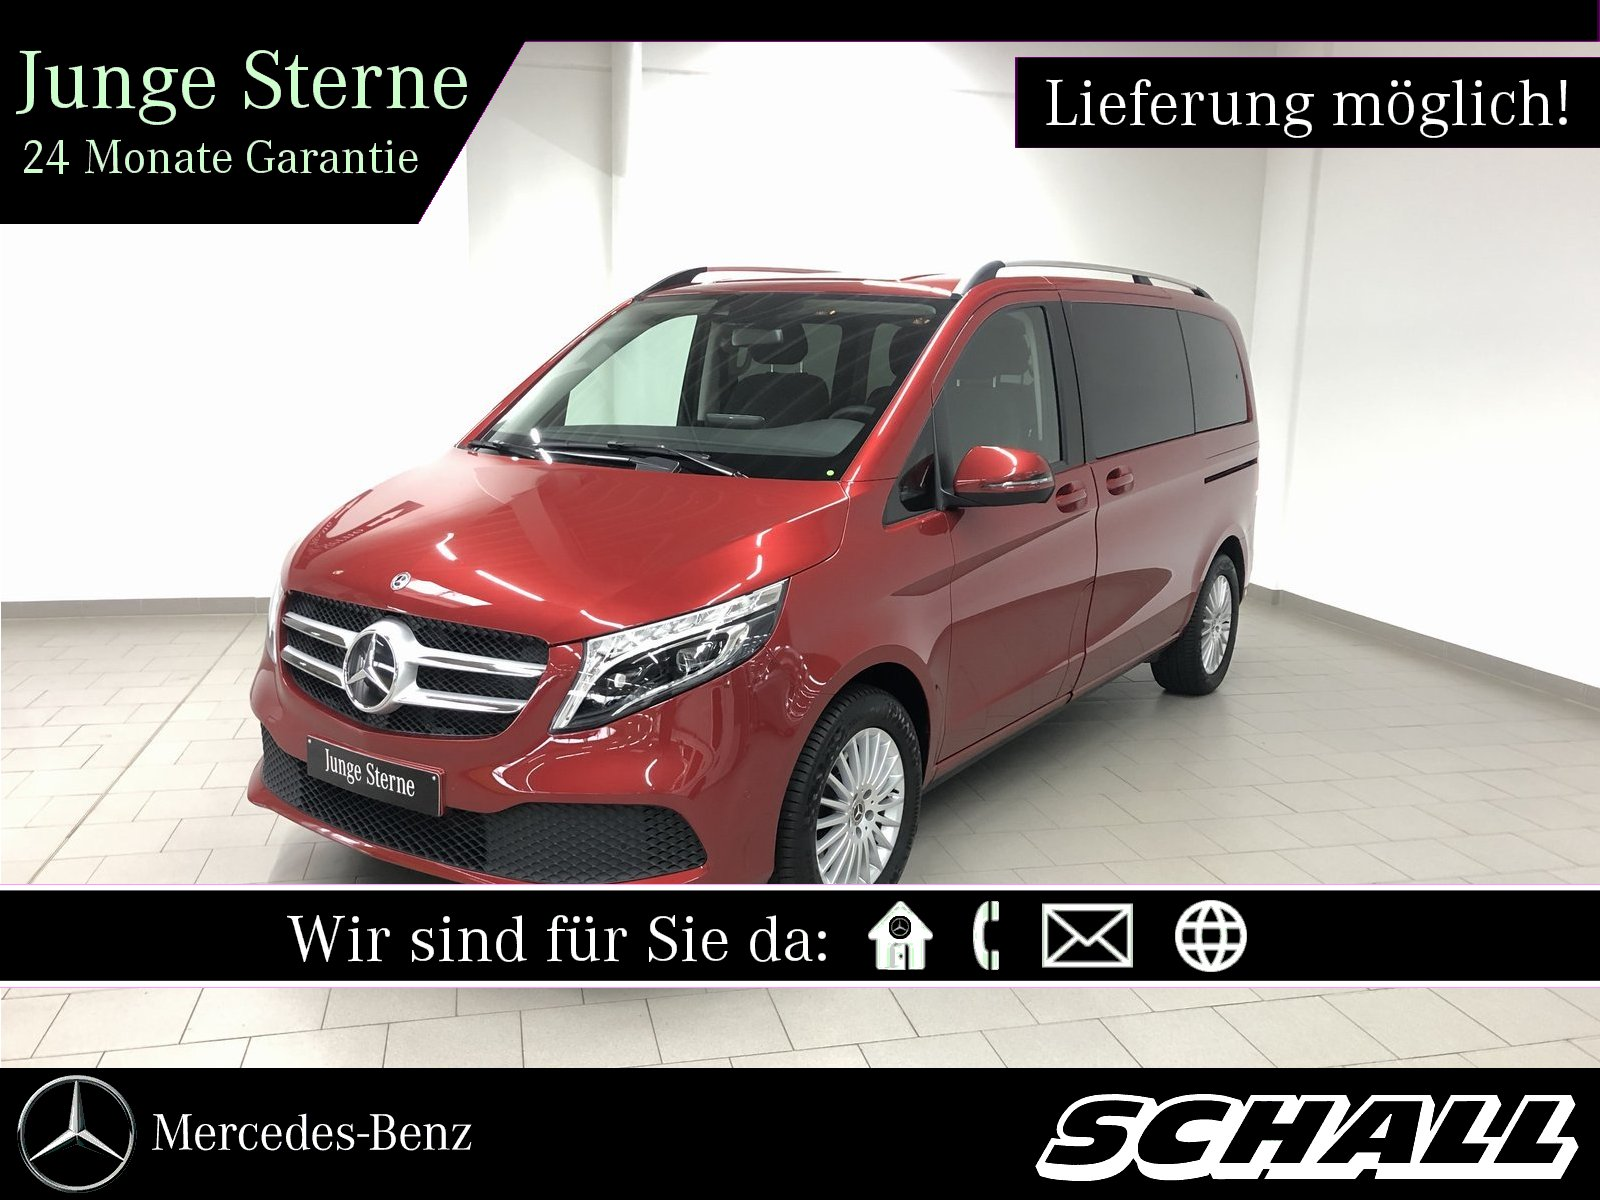 Mercedes-Benz V 300 d 4M K EDITION DISTR+LED+COMAND+KAMERA, Jahr 2019, Diesel